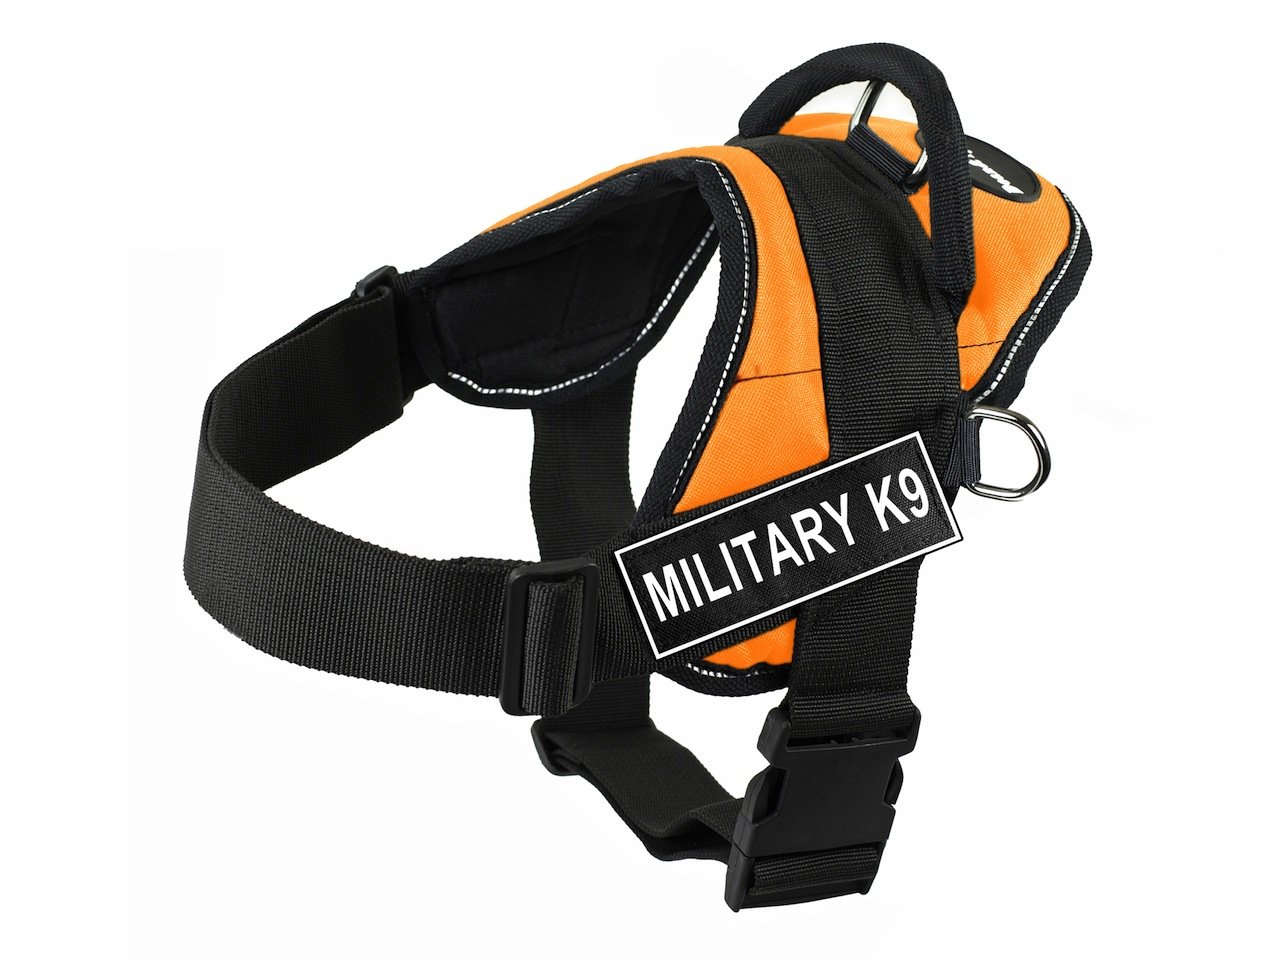 Dean & Tyler DT Fun Military K9 Harness with Reflective Trim, X-Small, orange